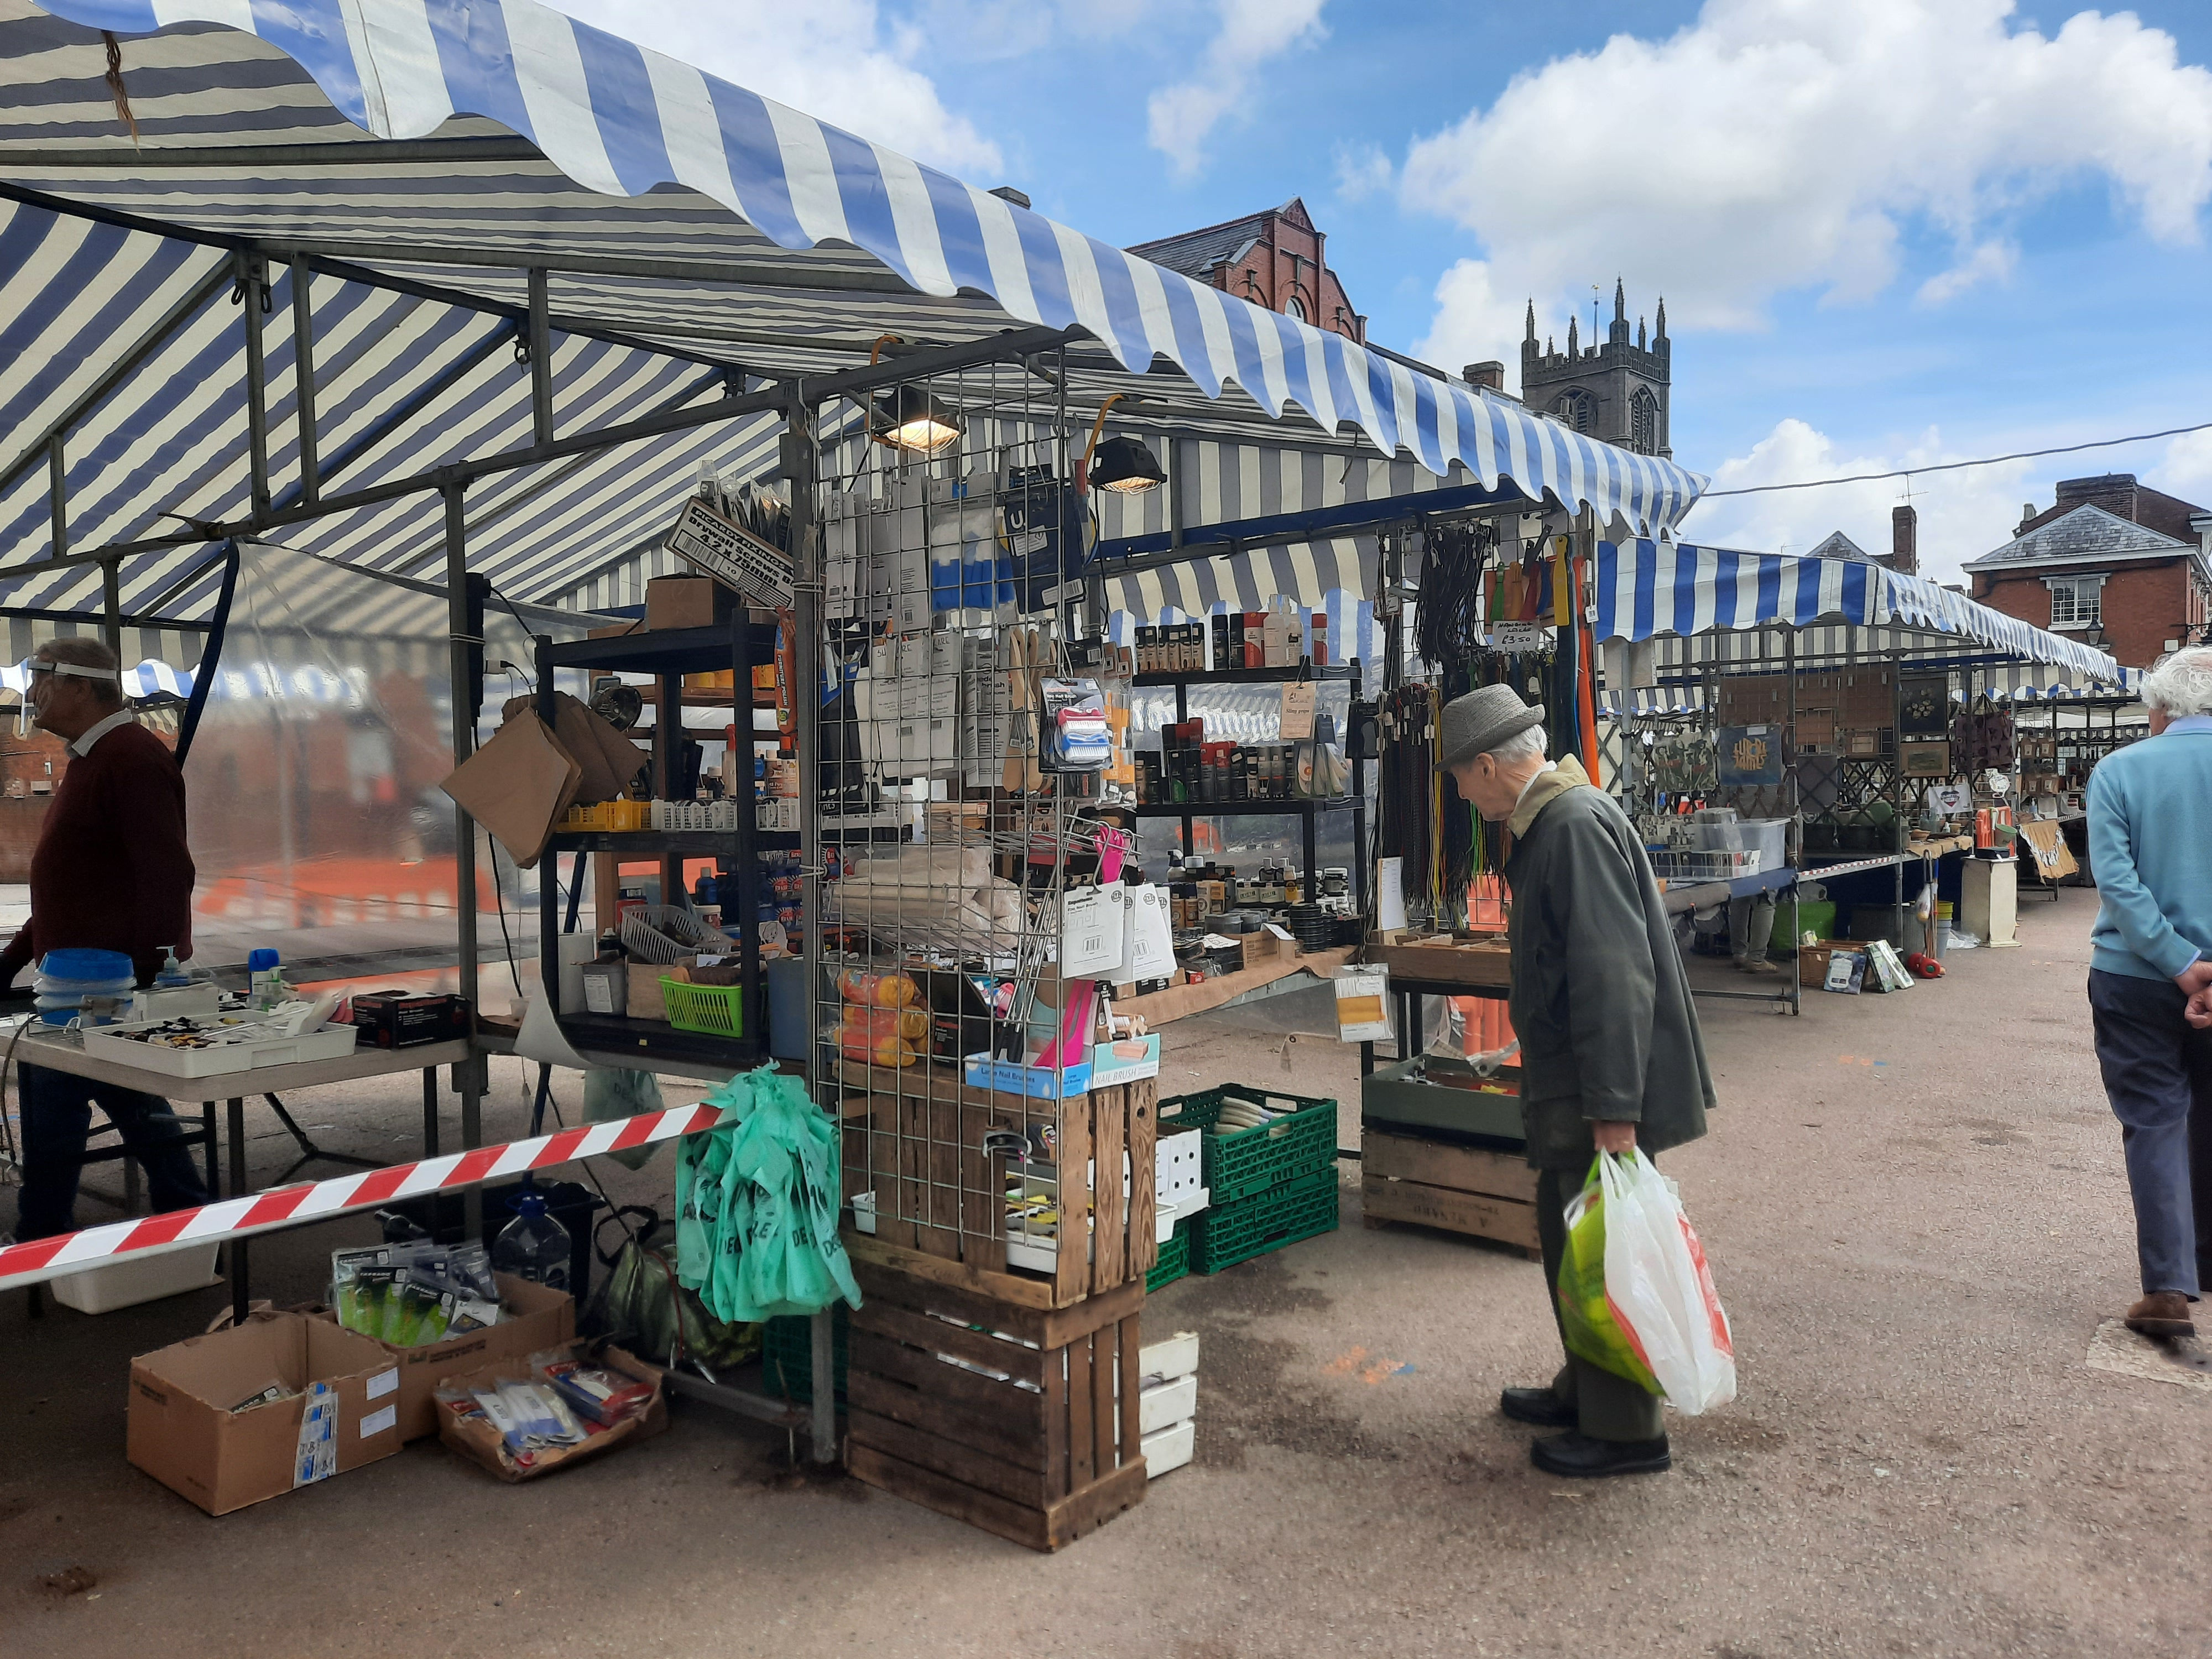 Ludlow Town Council set to increase the number of market stalls and pitches from 20 to 30 #recovery